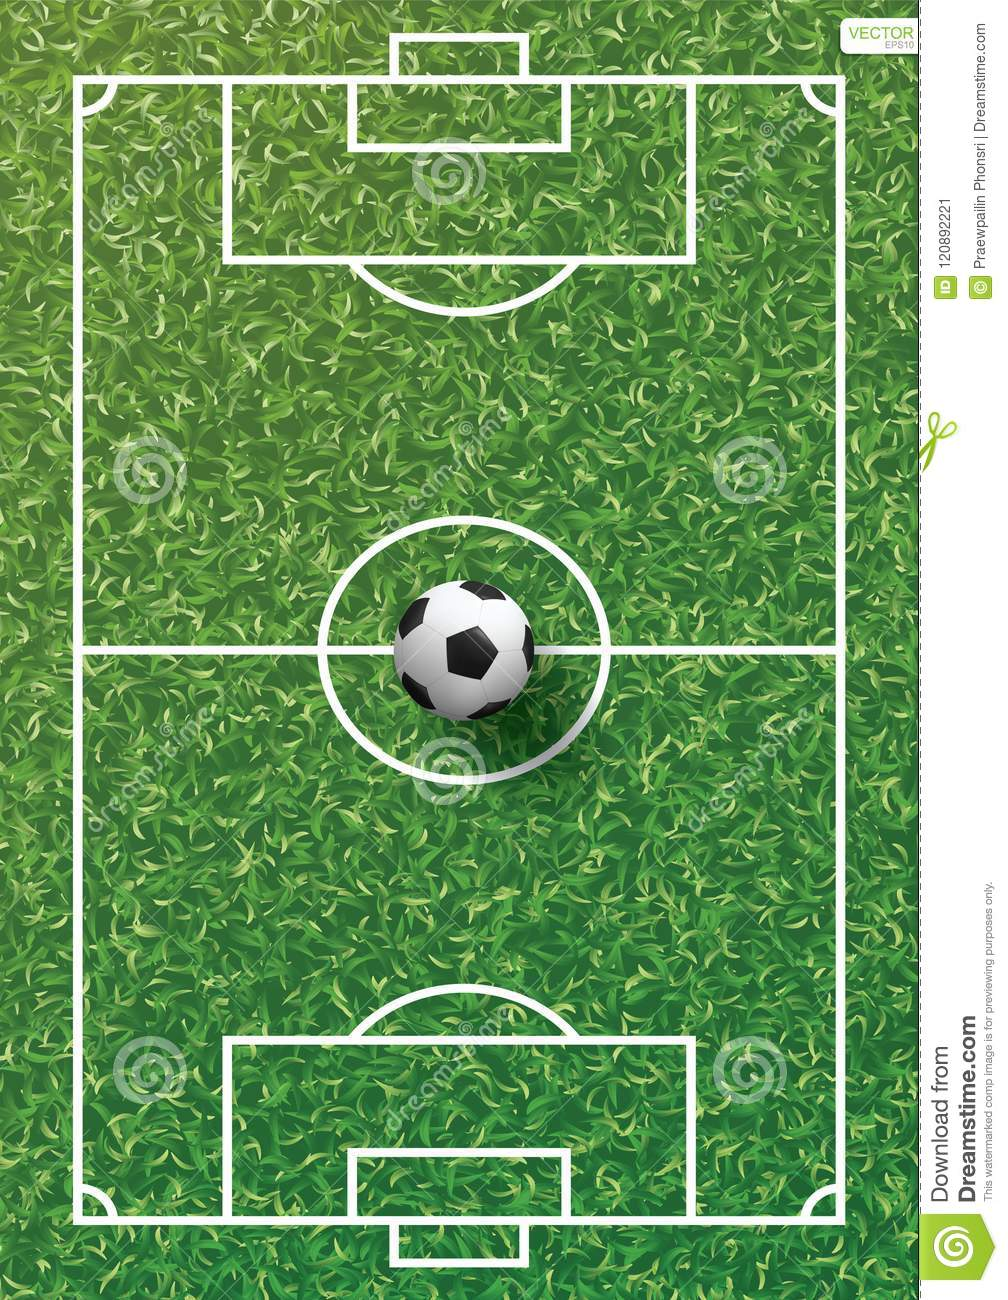 grass texture game high quality soccer football ball on green grass of soccer field with line pattern and texture background vector illustration football ball on green grass of field with line